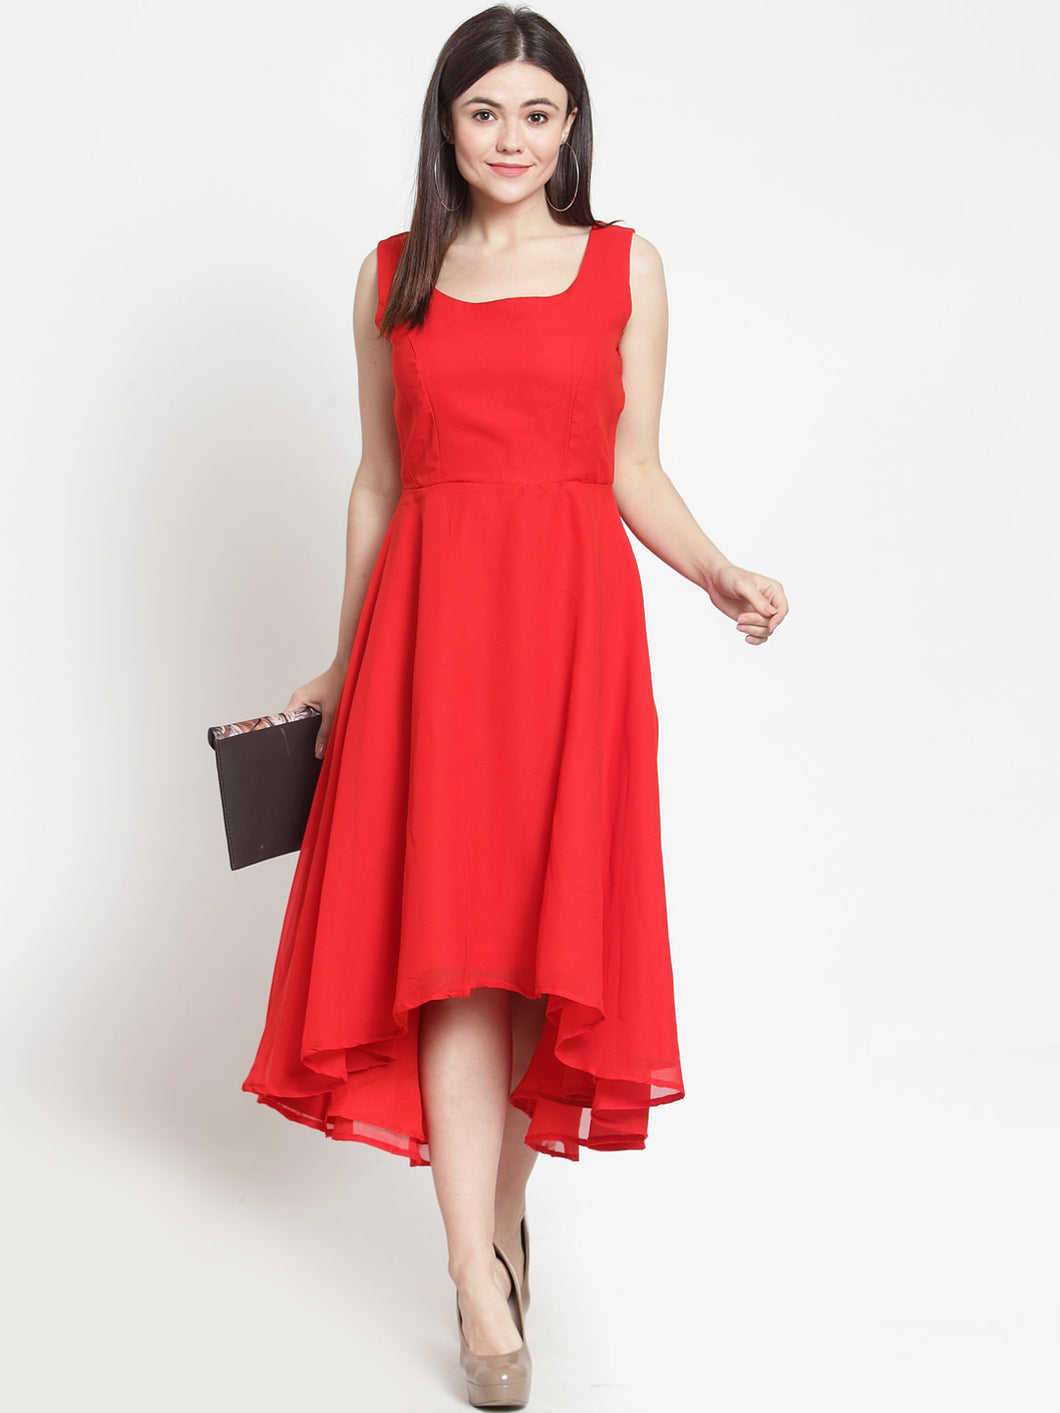 Queen ellie Women Solid Red Fit and Flare Dress